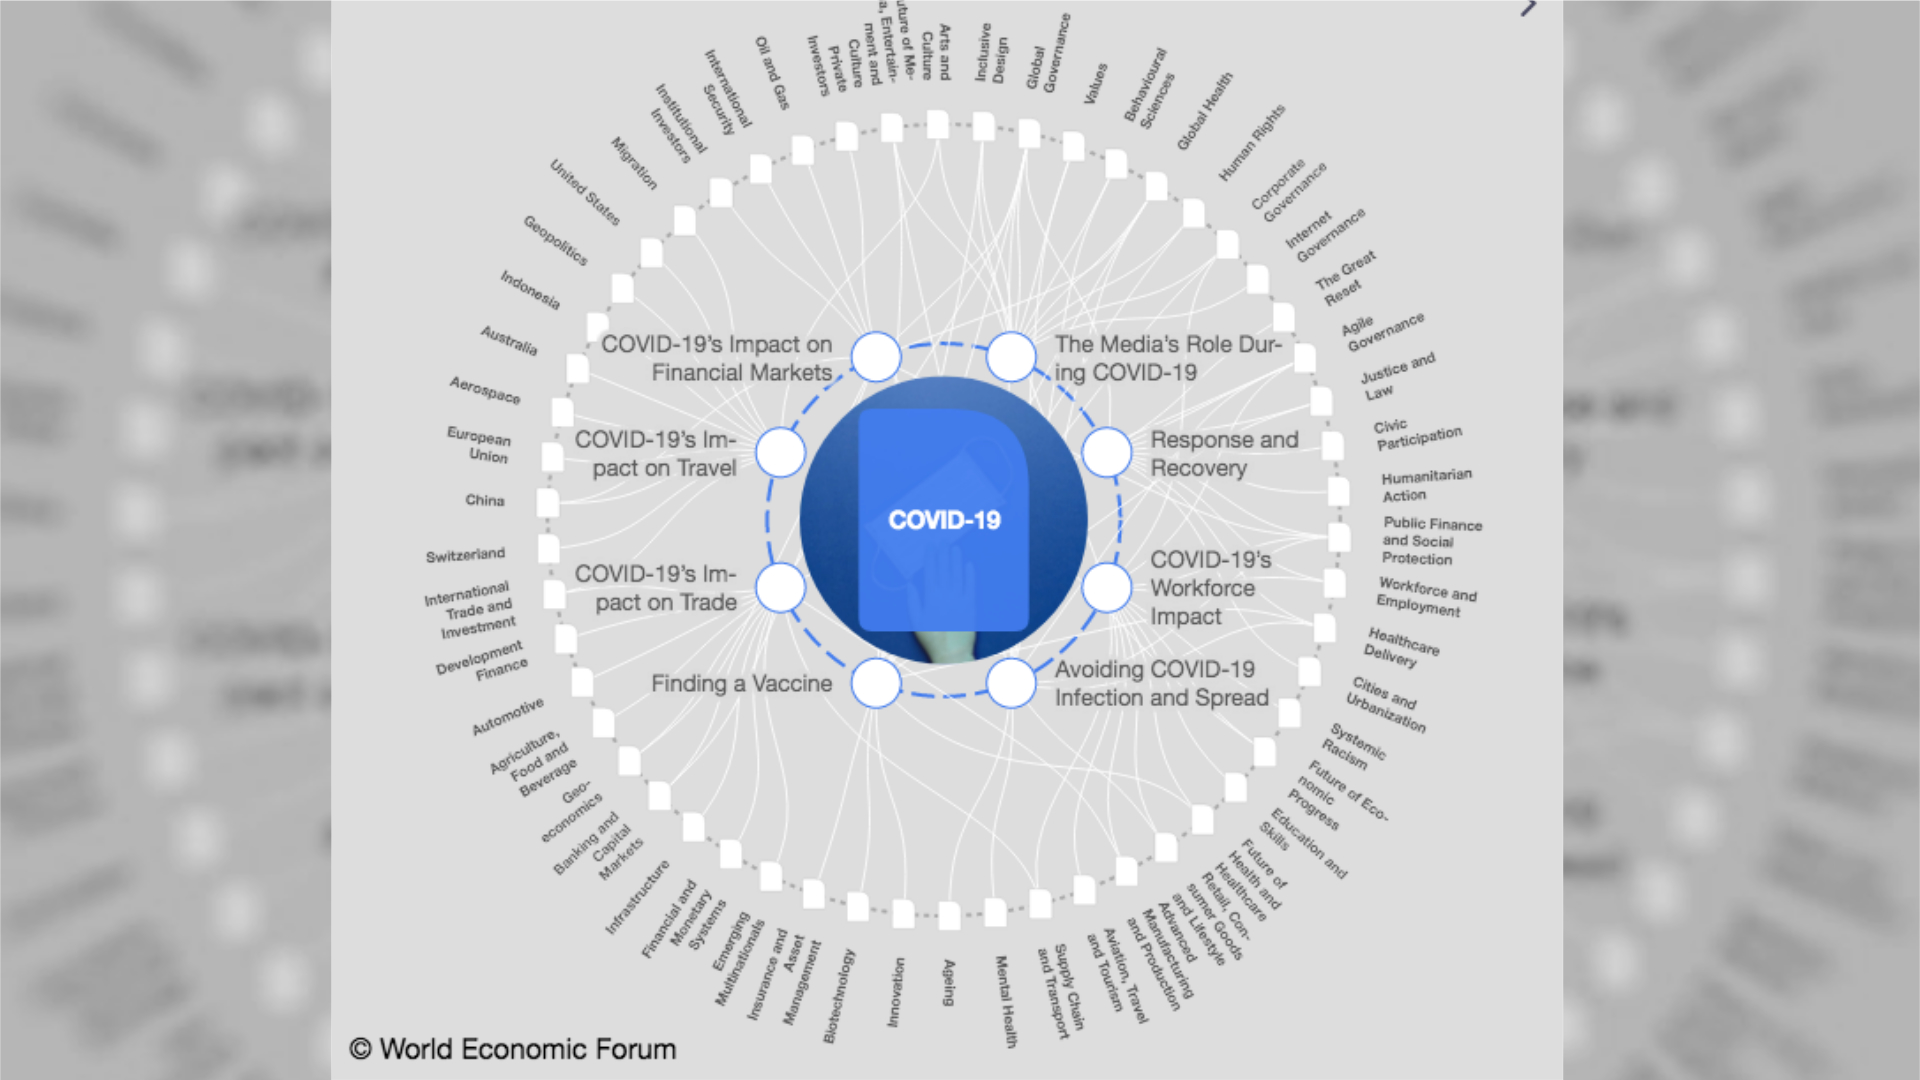 Grafik des World Economic Forum